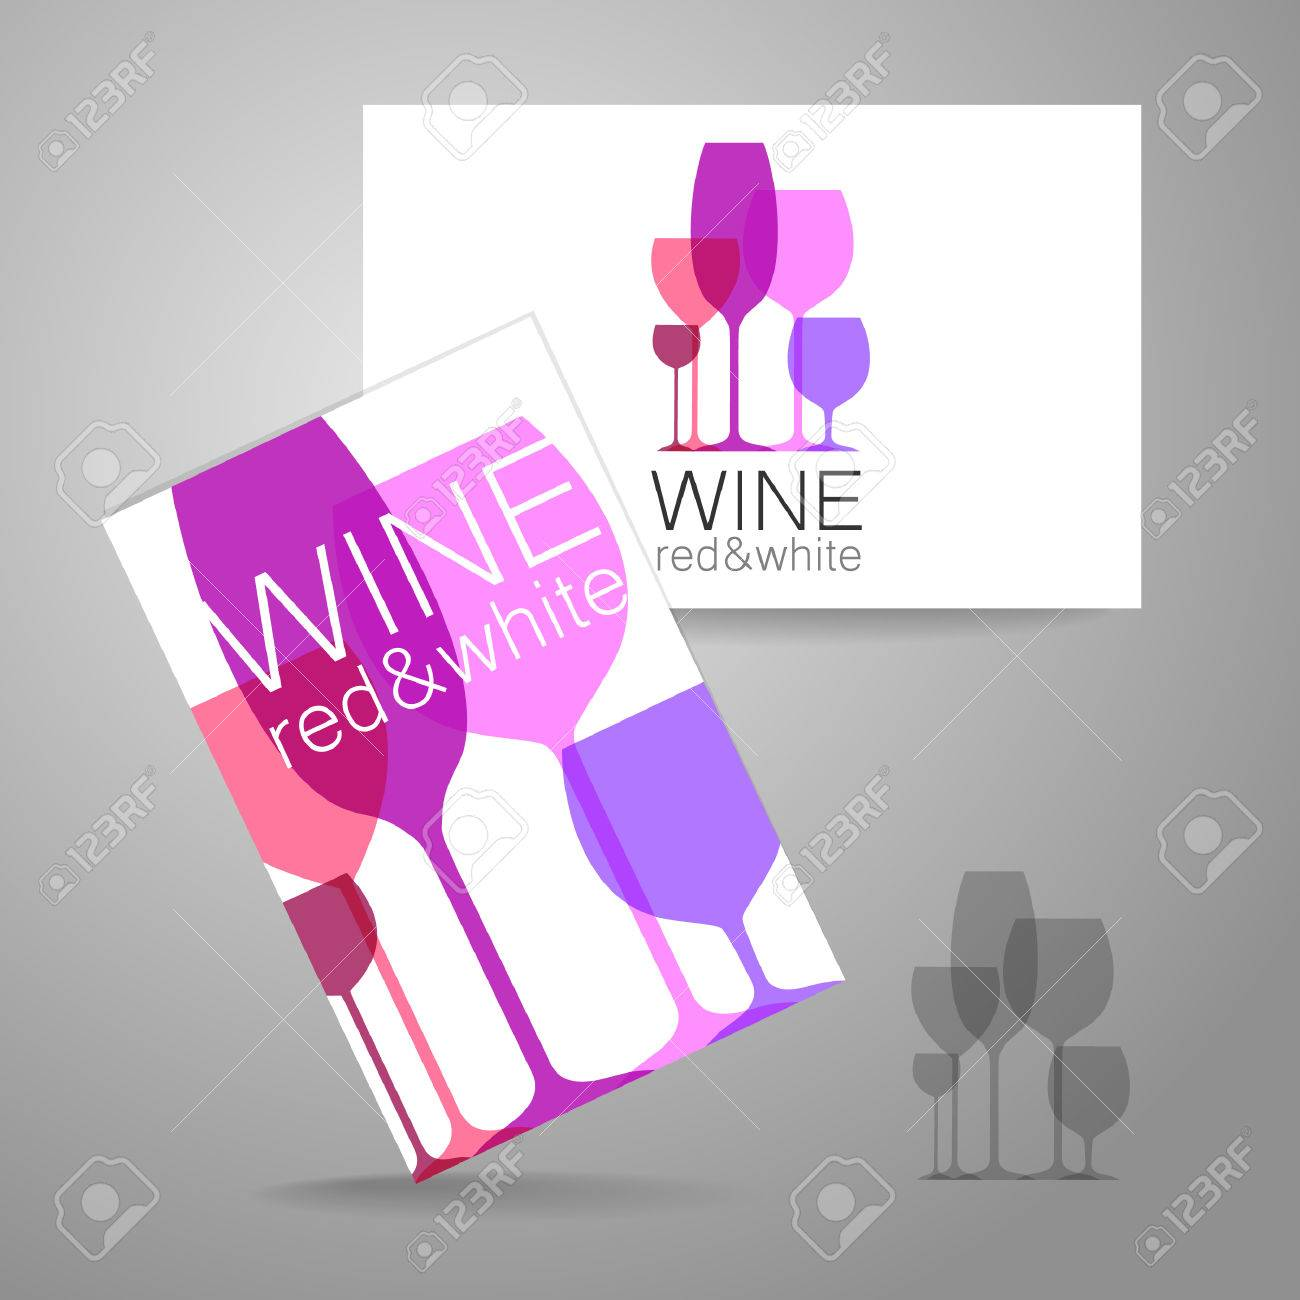 Free Business Card Template Wine Images - Card Design And Card ...